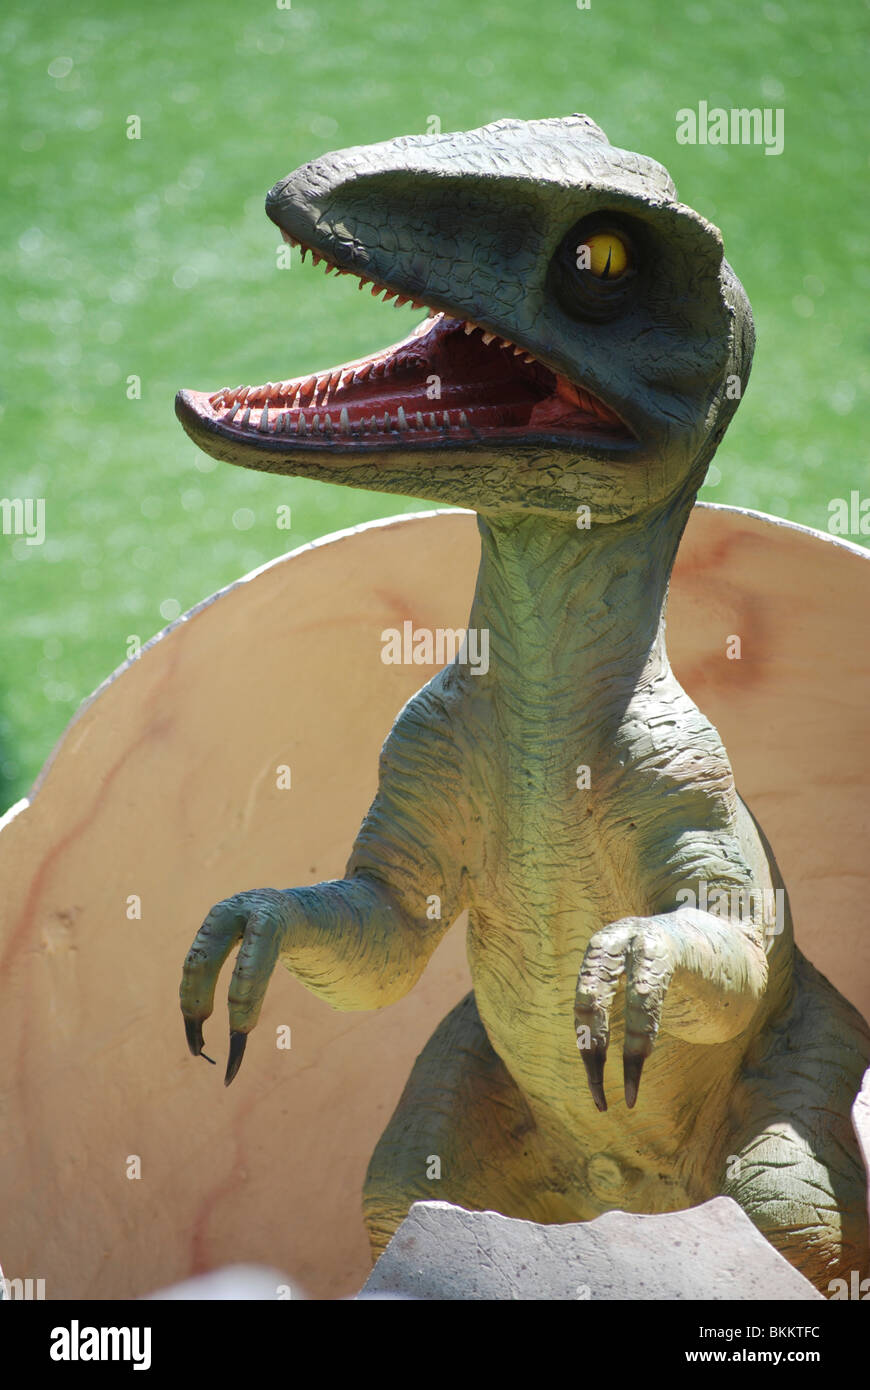 Young Velociraptor hatches from an egg - Stock Image